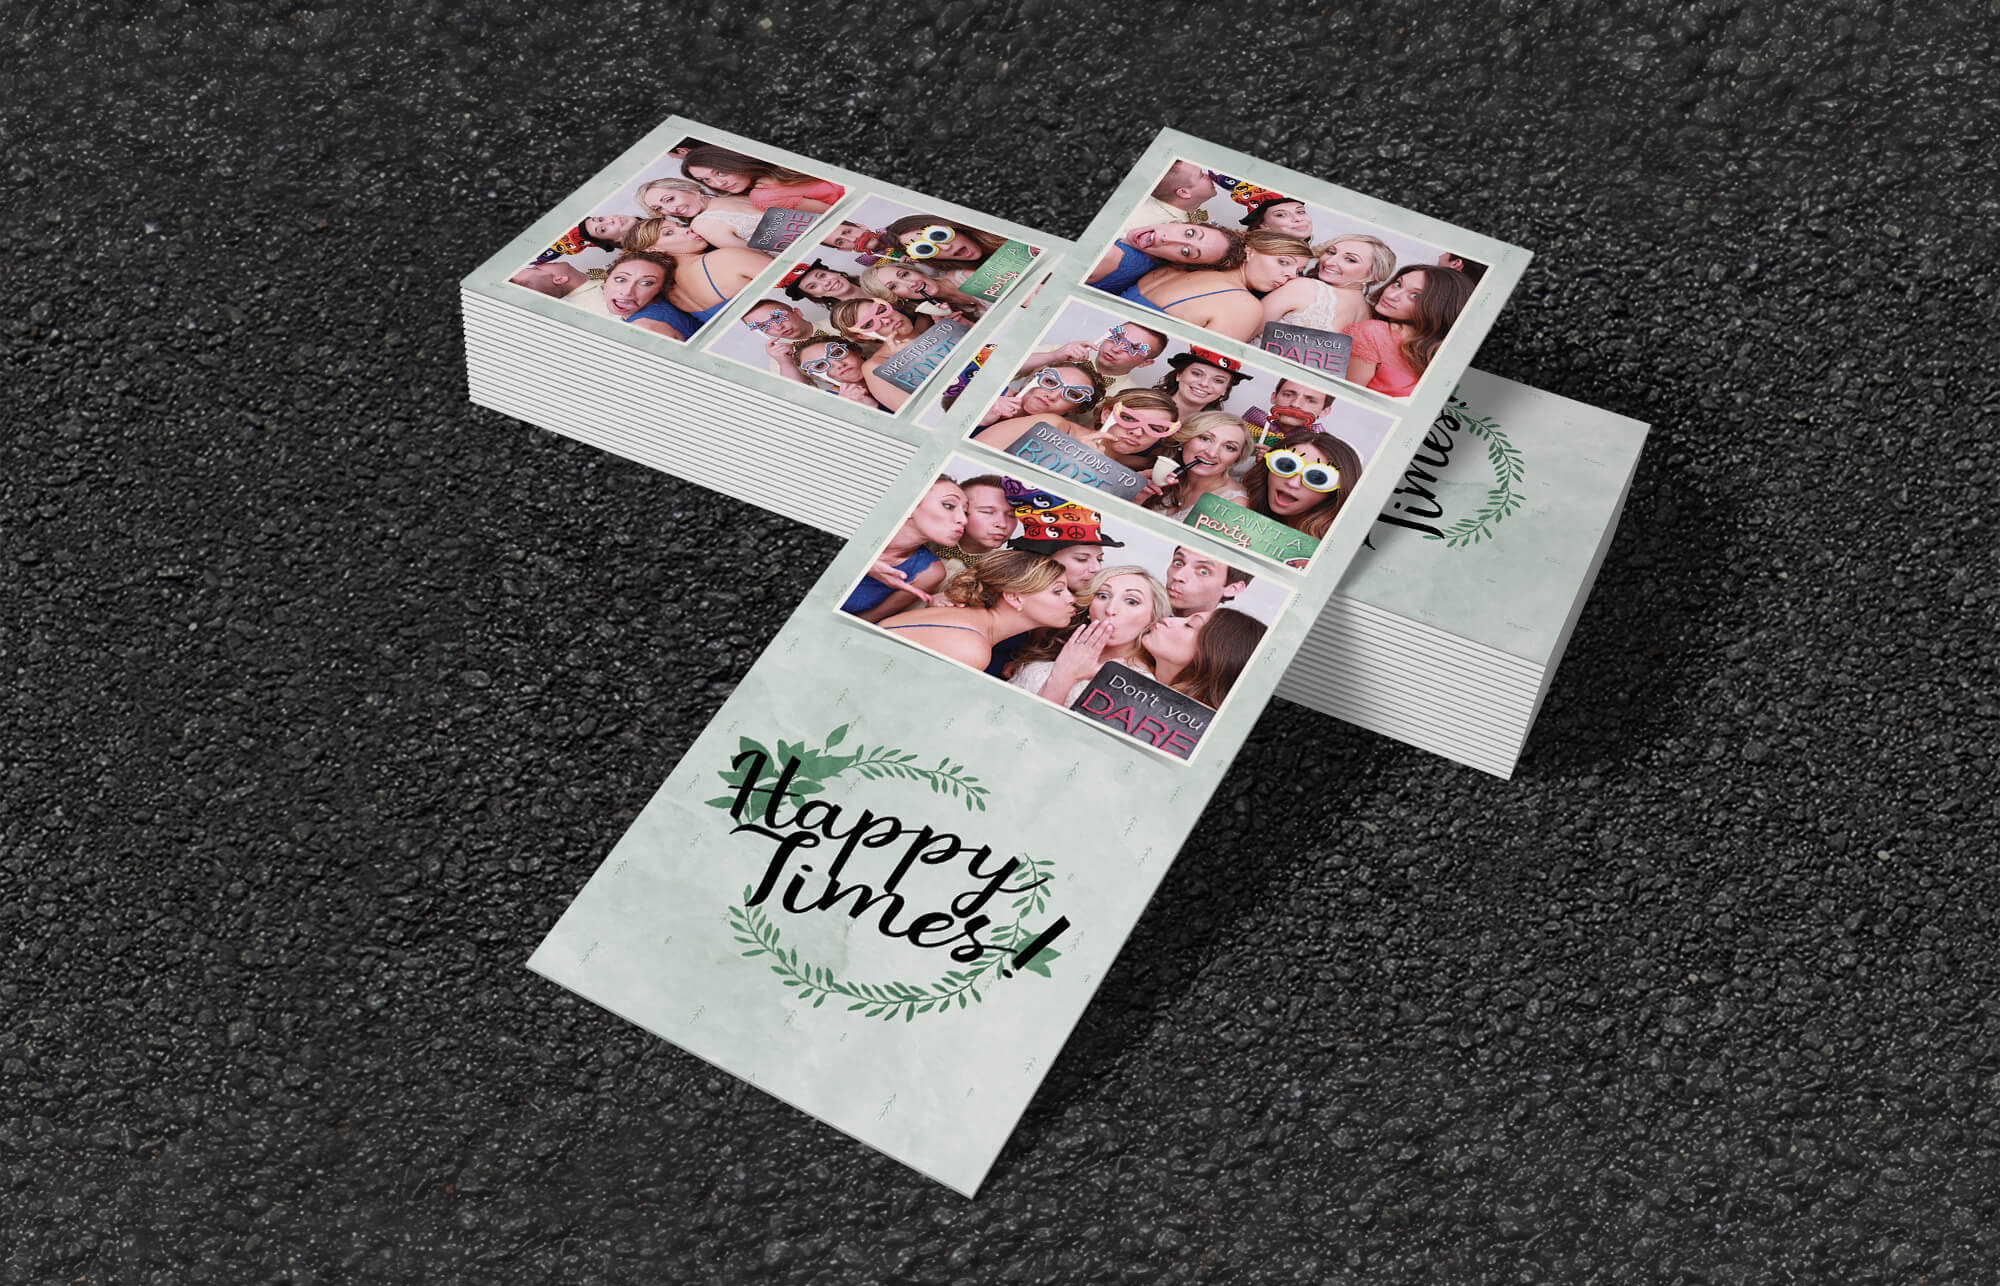 Standard Design X Templates Luxury Photo Booth Rental - Photo booth design templates